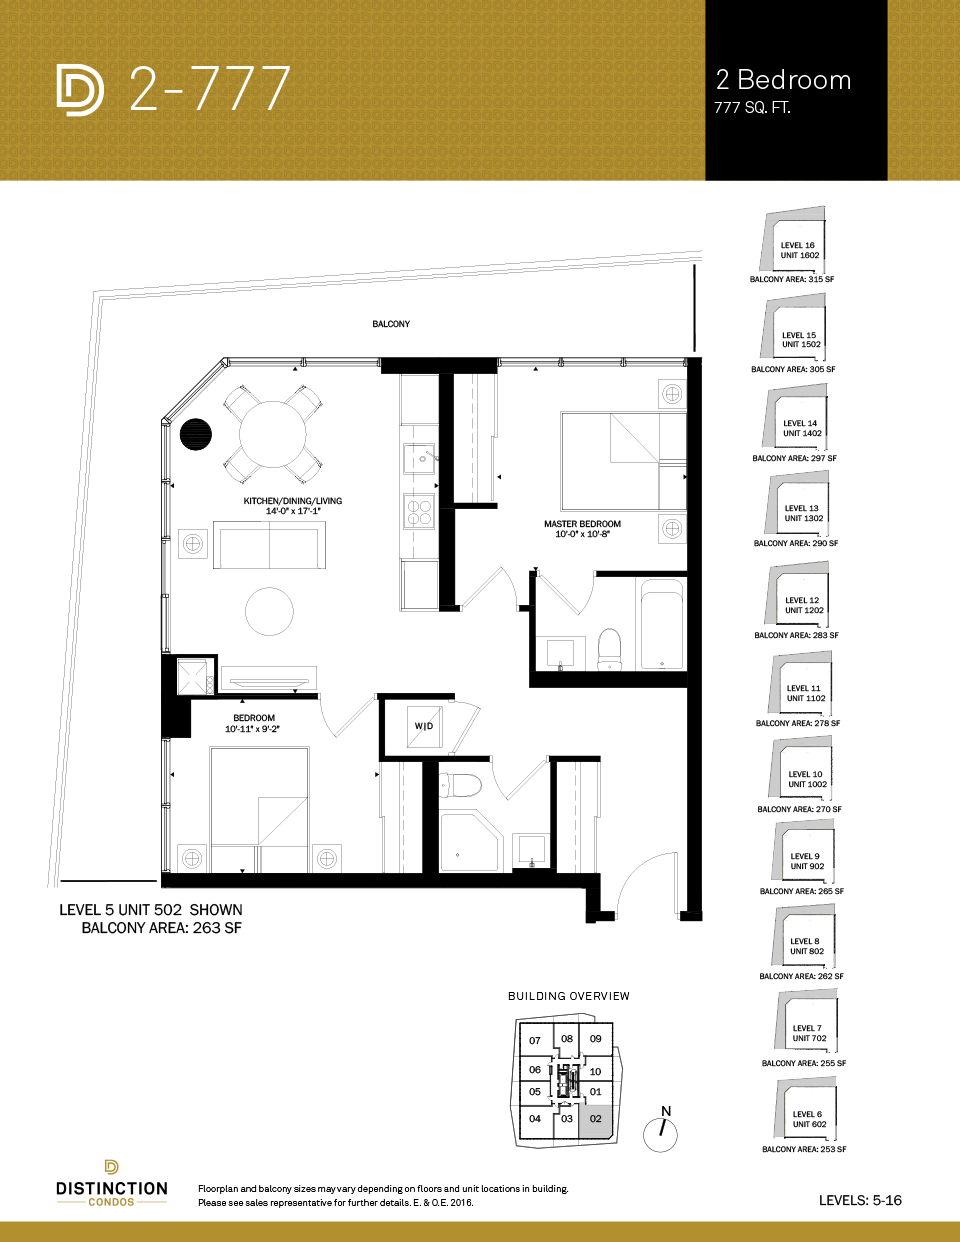 distinction condos floorplan 2-777